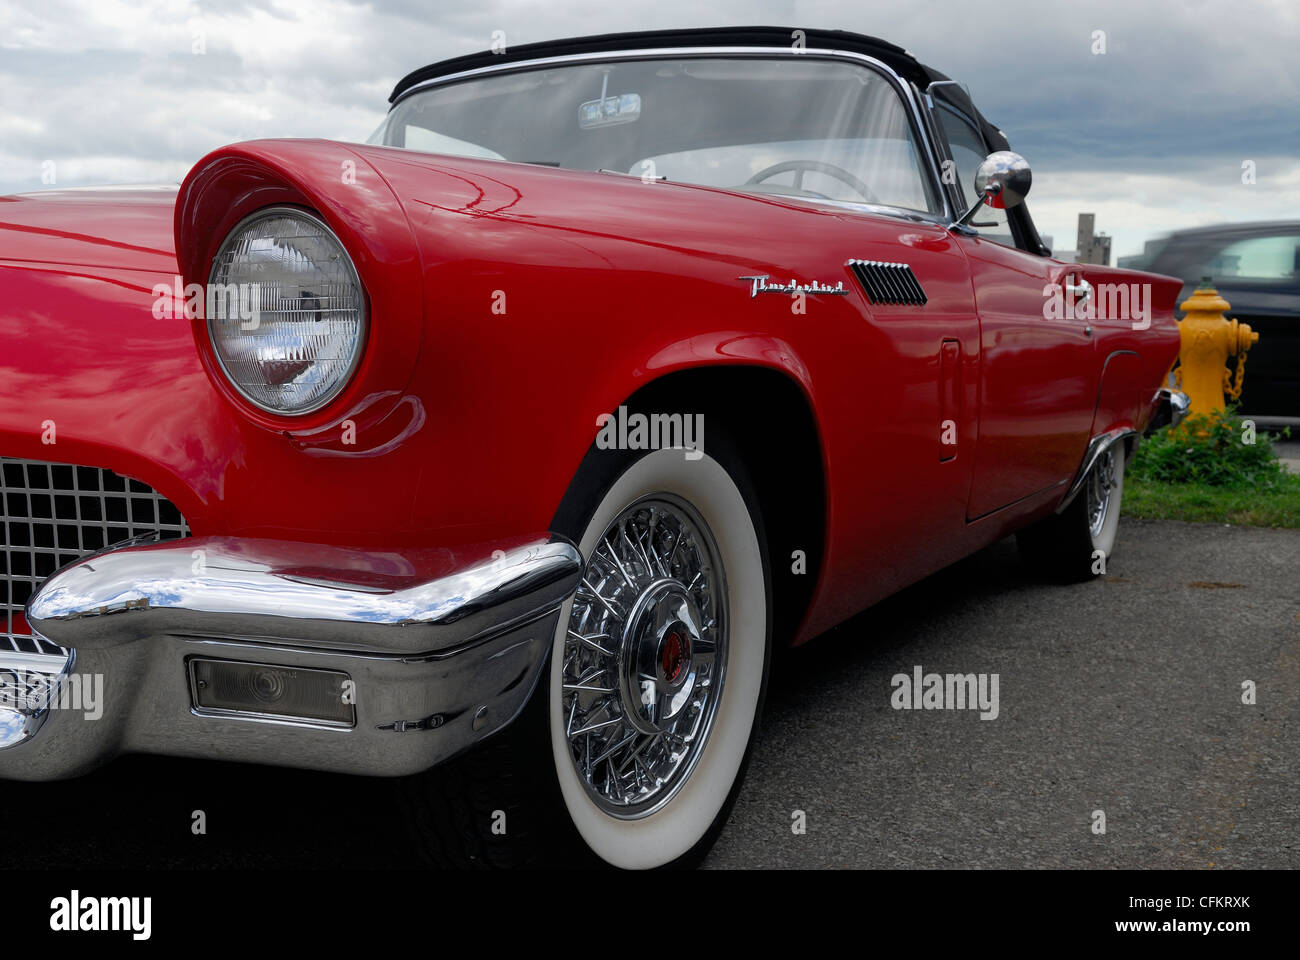 Red 1957 Ford Thunderbird convertible Toronto - Stock Image